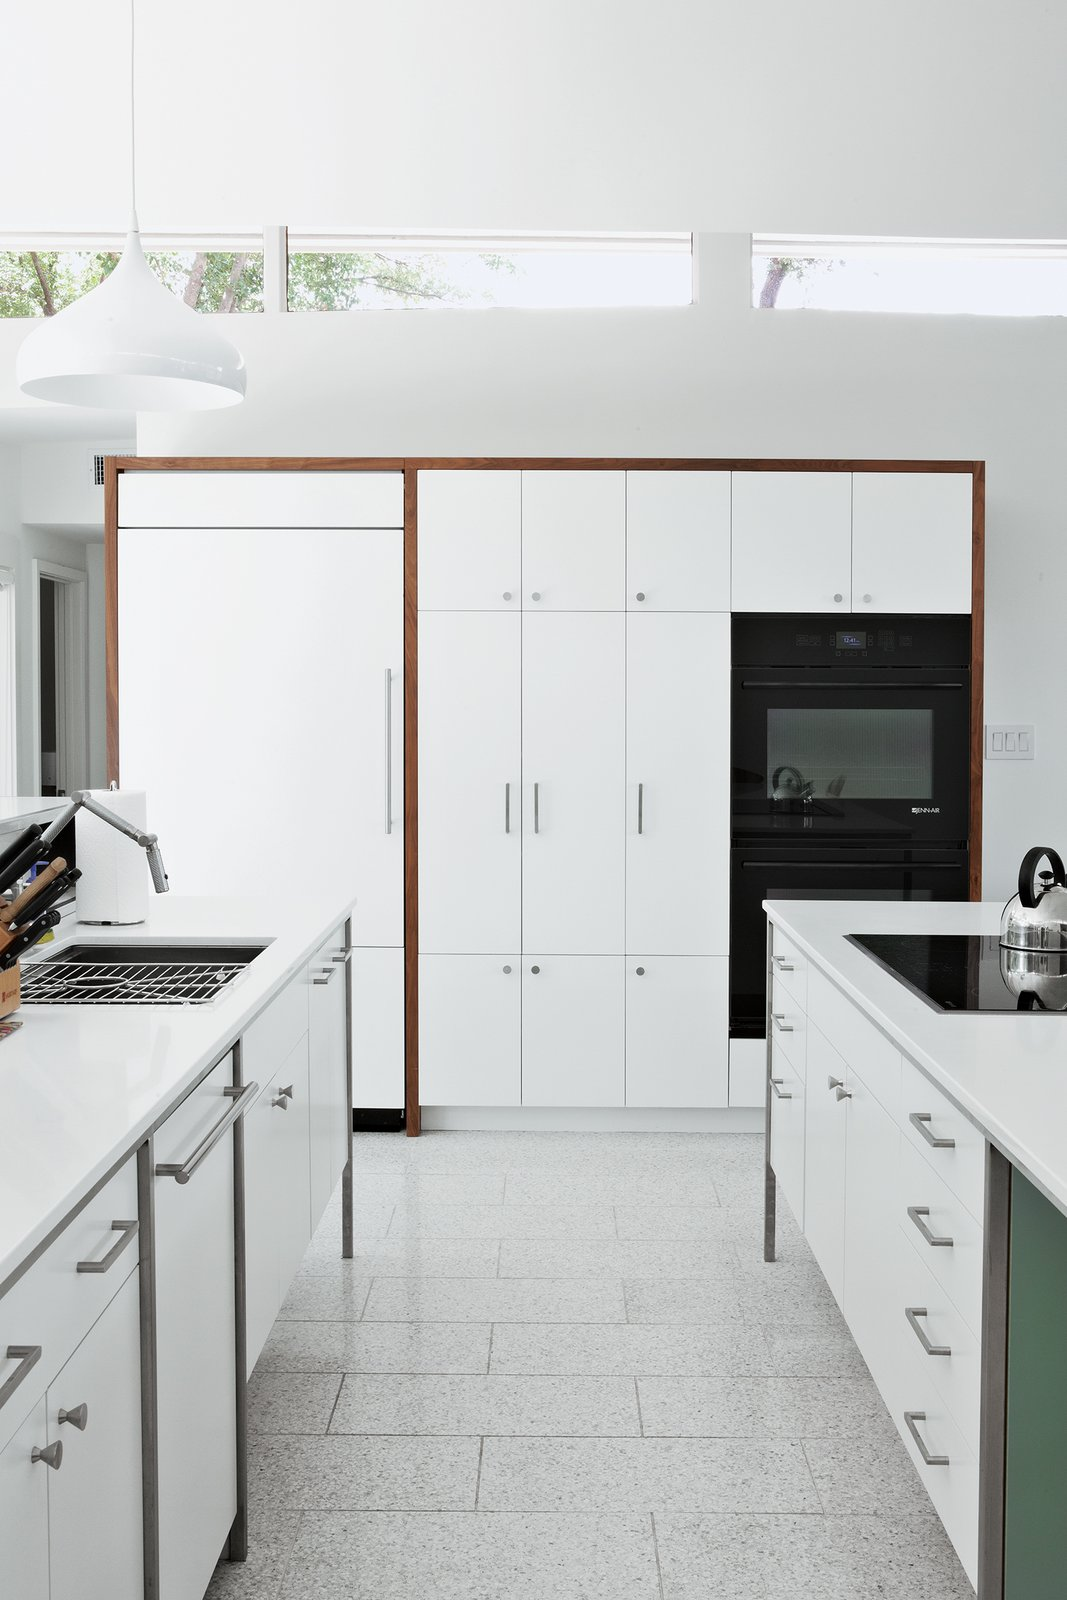 Kitchen, White Cabinet, Undermount Sink, Wall Oven, Pendant Lighting, Cooktops, Refrigerator, and Dishwasher The cooktop, refrigerator, and wall ovens are by Jenn-Air; the sink and faucet are by Kohler; and the countertops are from Caesarstone.    Photo 3 of 11 in A Renovated Midcentury Gem in Austin